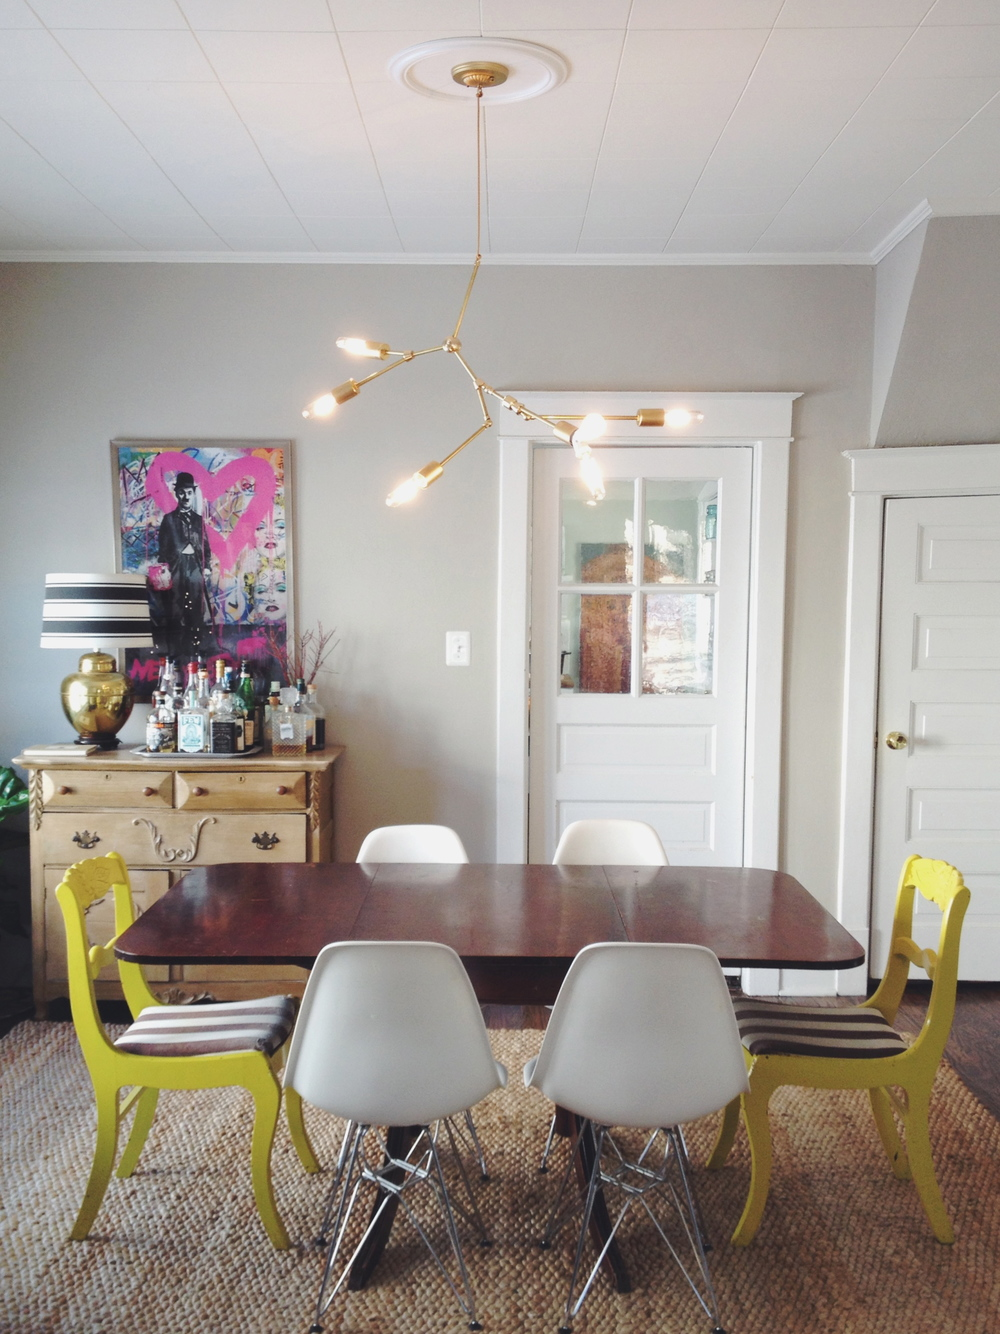 The Casa Pino Dining Room Chandelier DIY.jpg